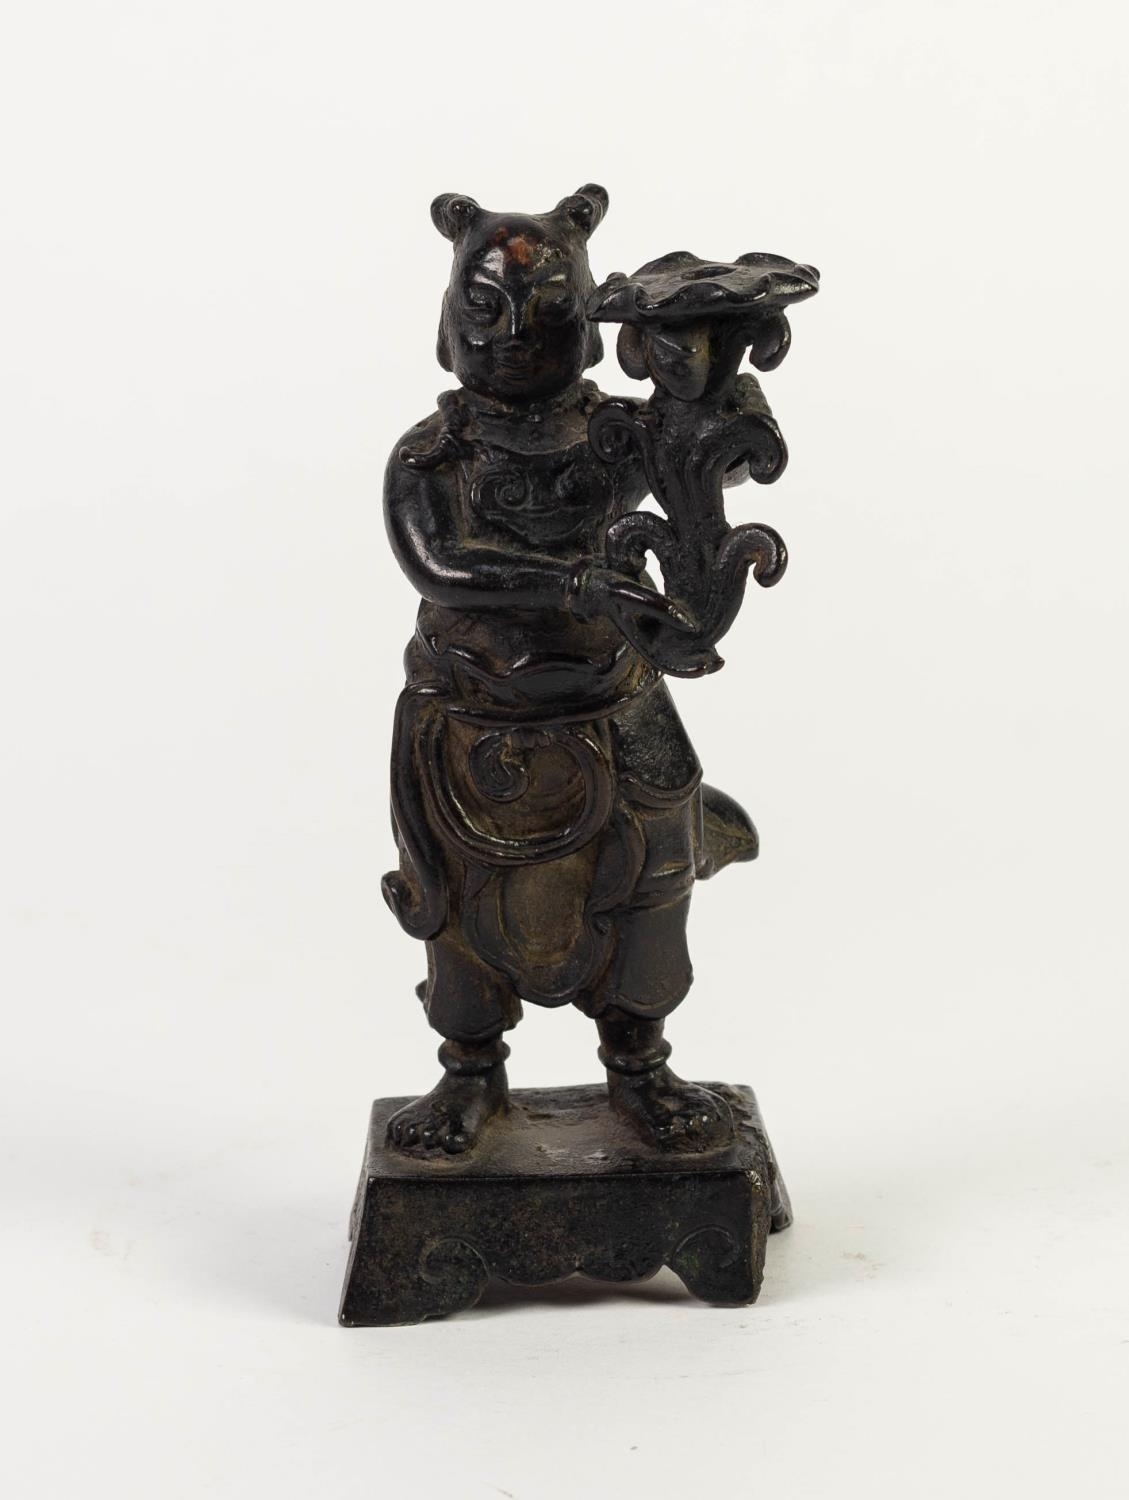 ANTIQUE CHINESE PATINATED BRONZE FIGURAL CANDLESTICK, modelled as a robed figure holding a floral